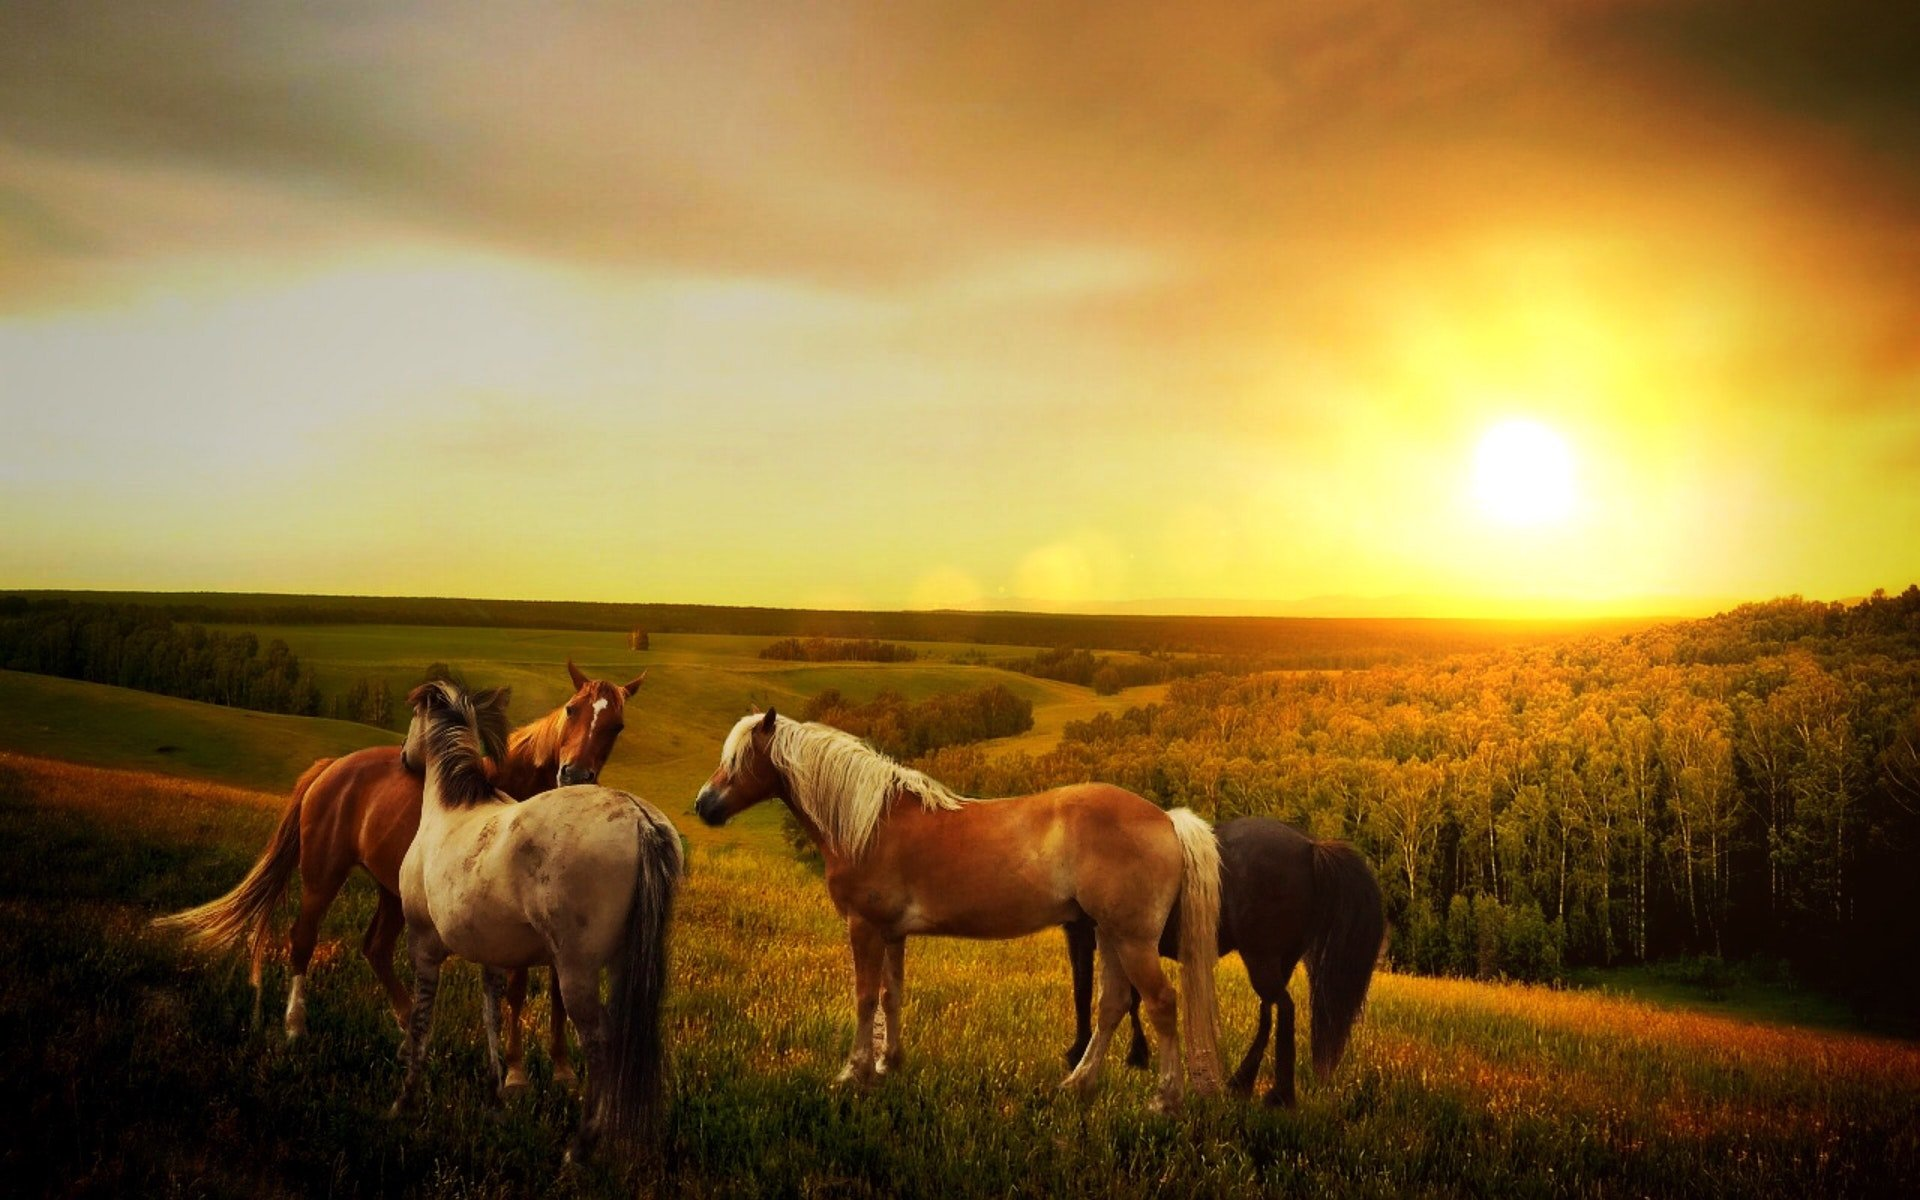 Horses in a field with sunset